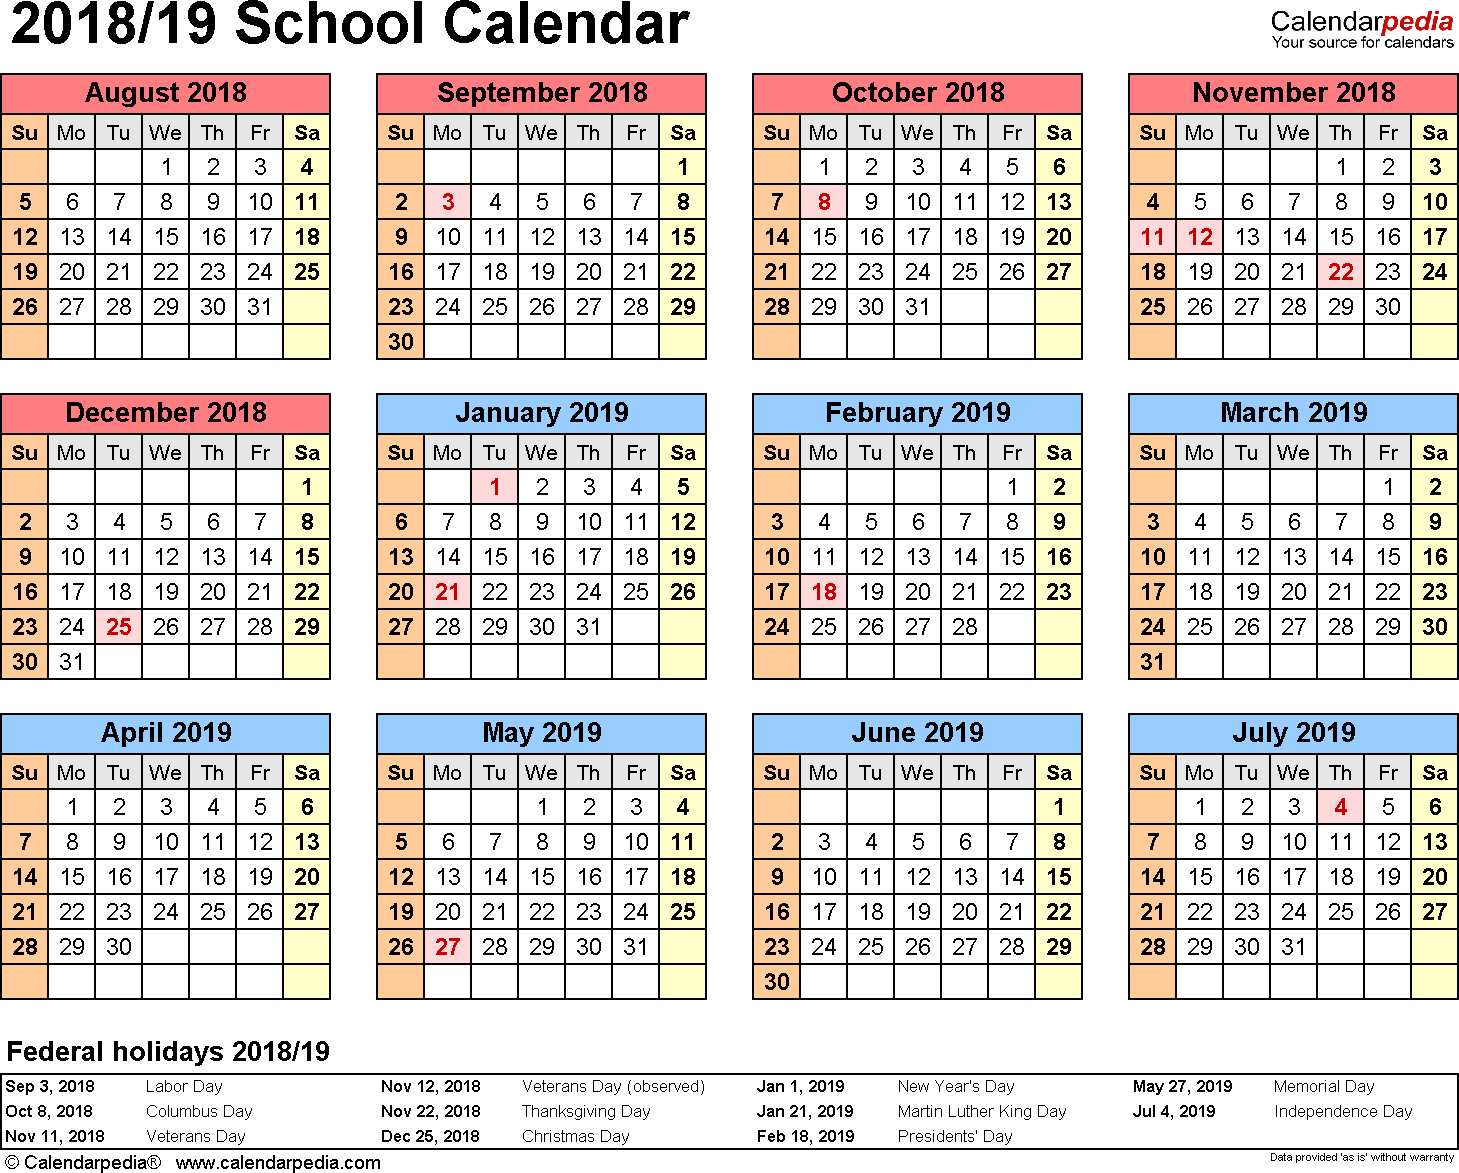 Template 4: School calendar 2018/19 for PDF, landscape orientation, year at a glance, 1 page